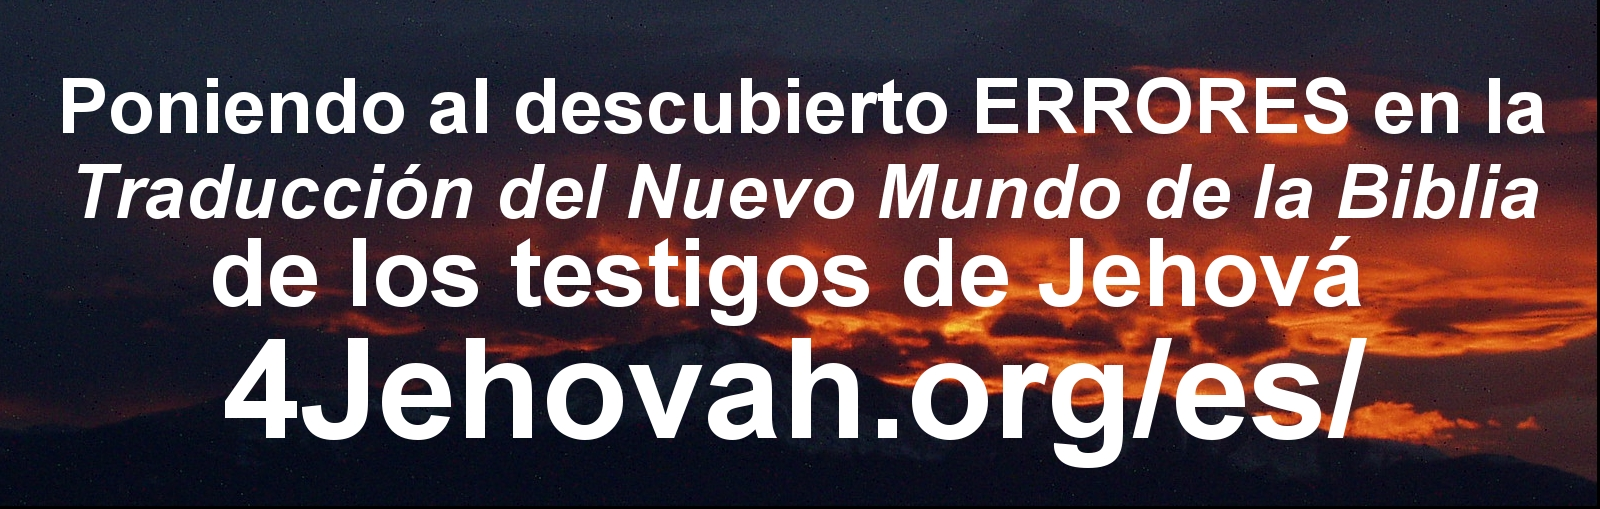 Exposing ERRORS in the New World Translation Bible of Jehovah's Witnesses 4Jehovah.org